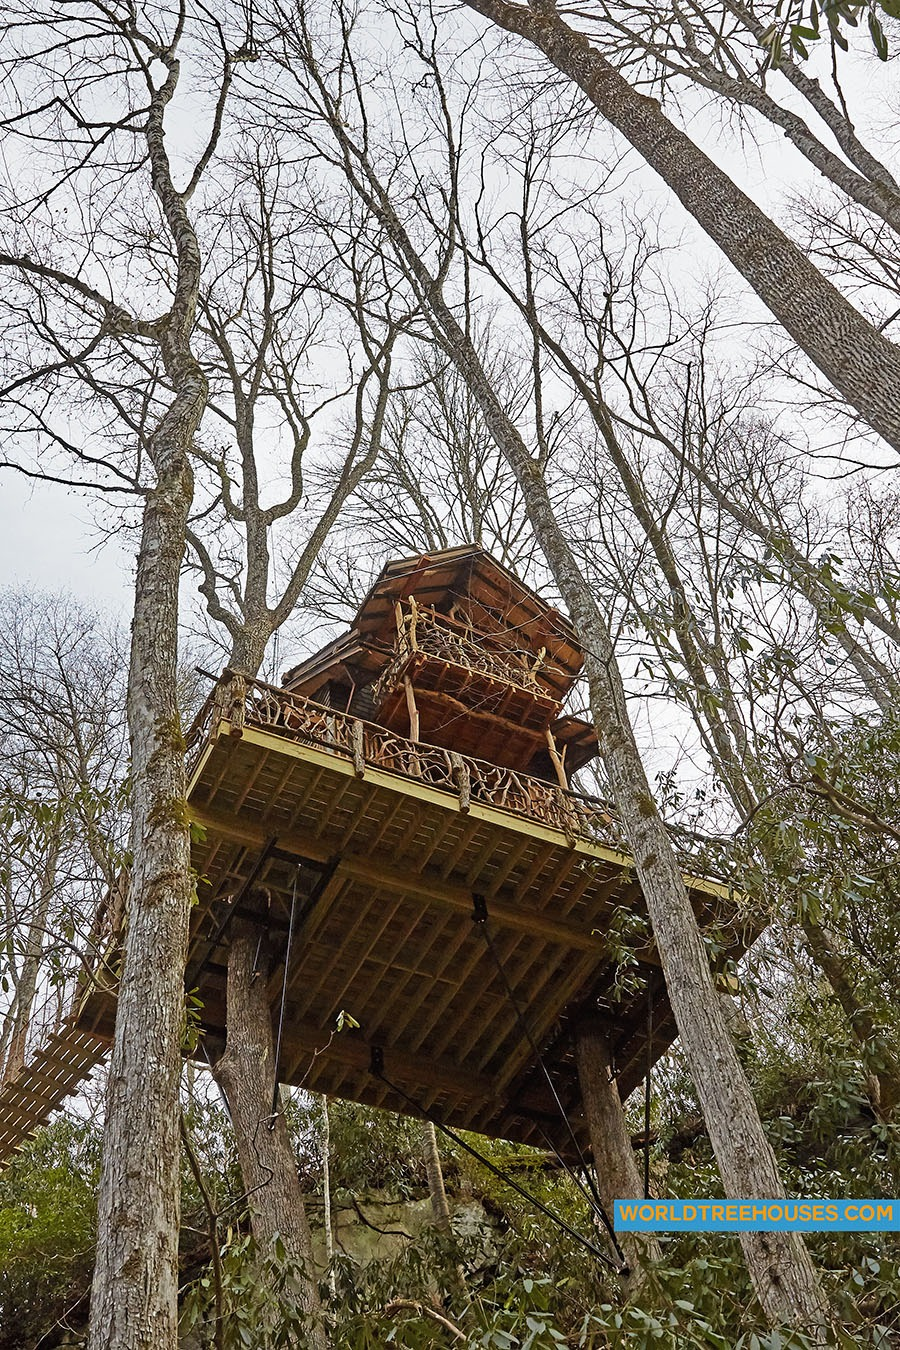 WNC treehouse builders : Panthertown treehouse – looking up up up!